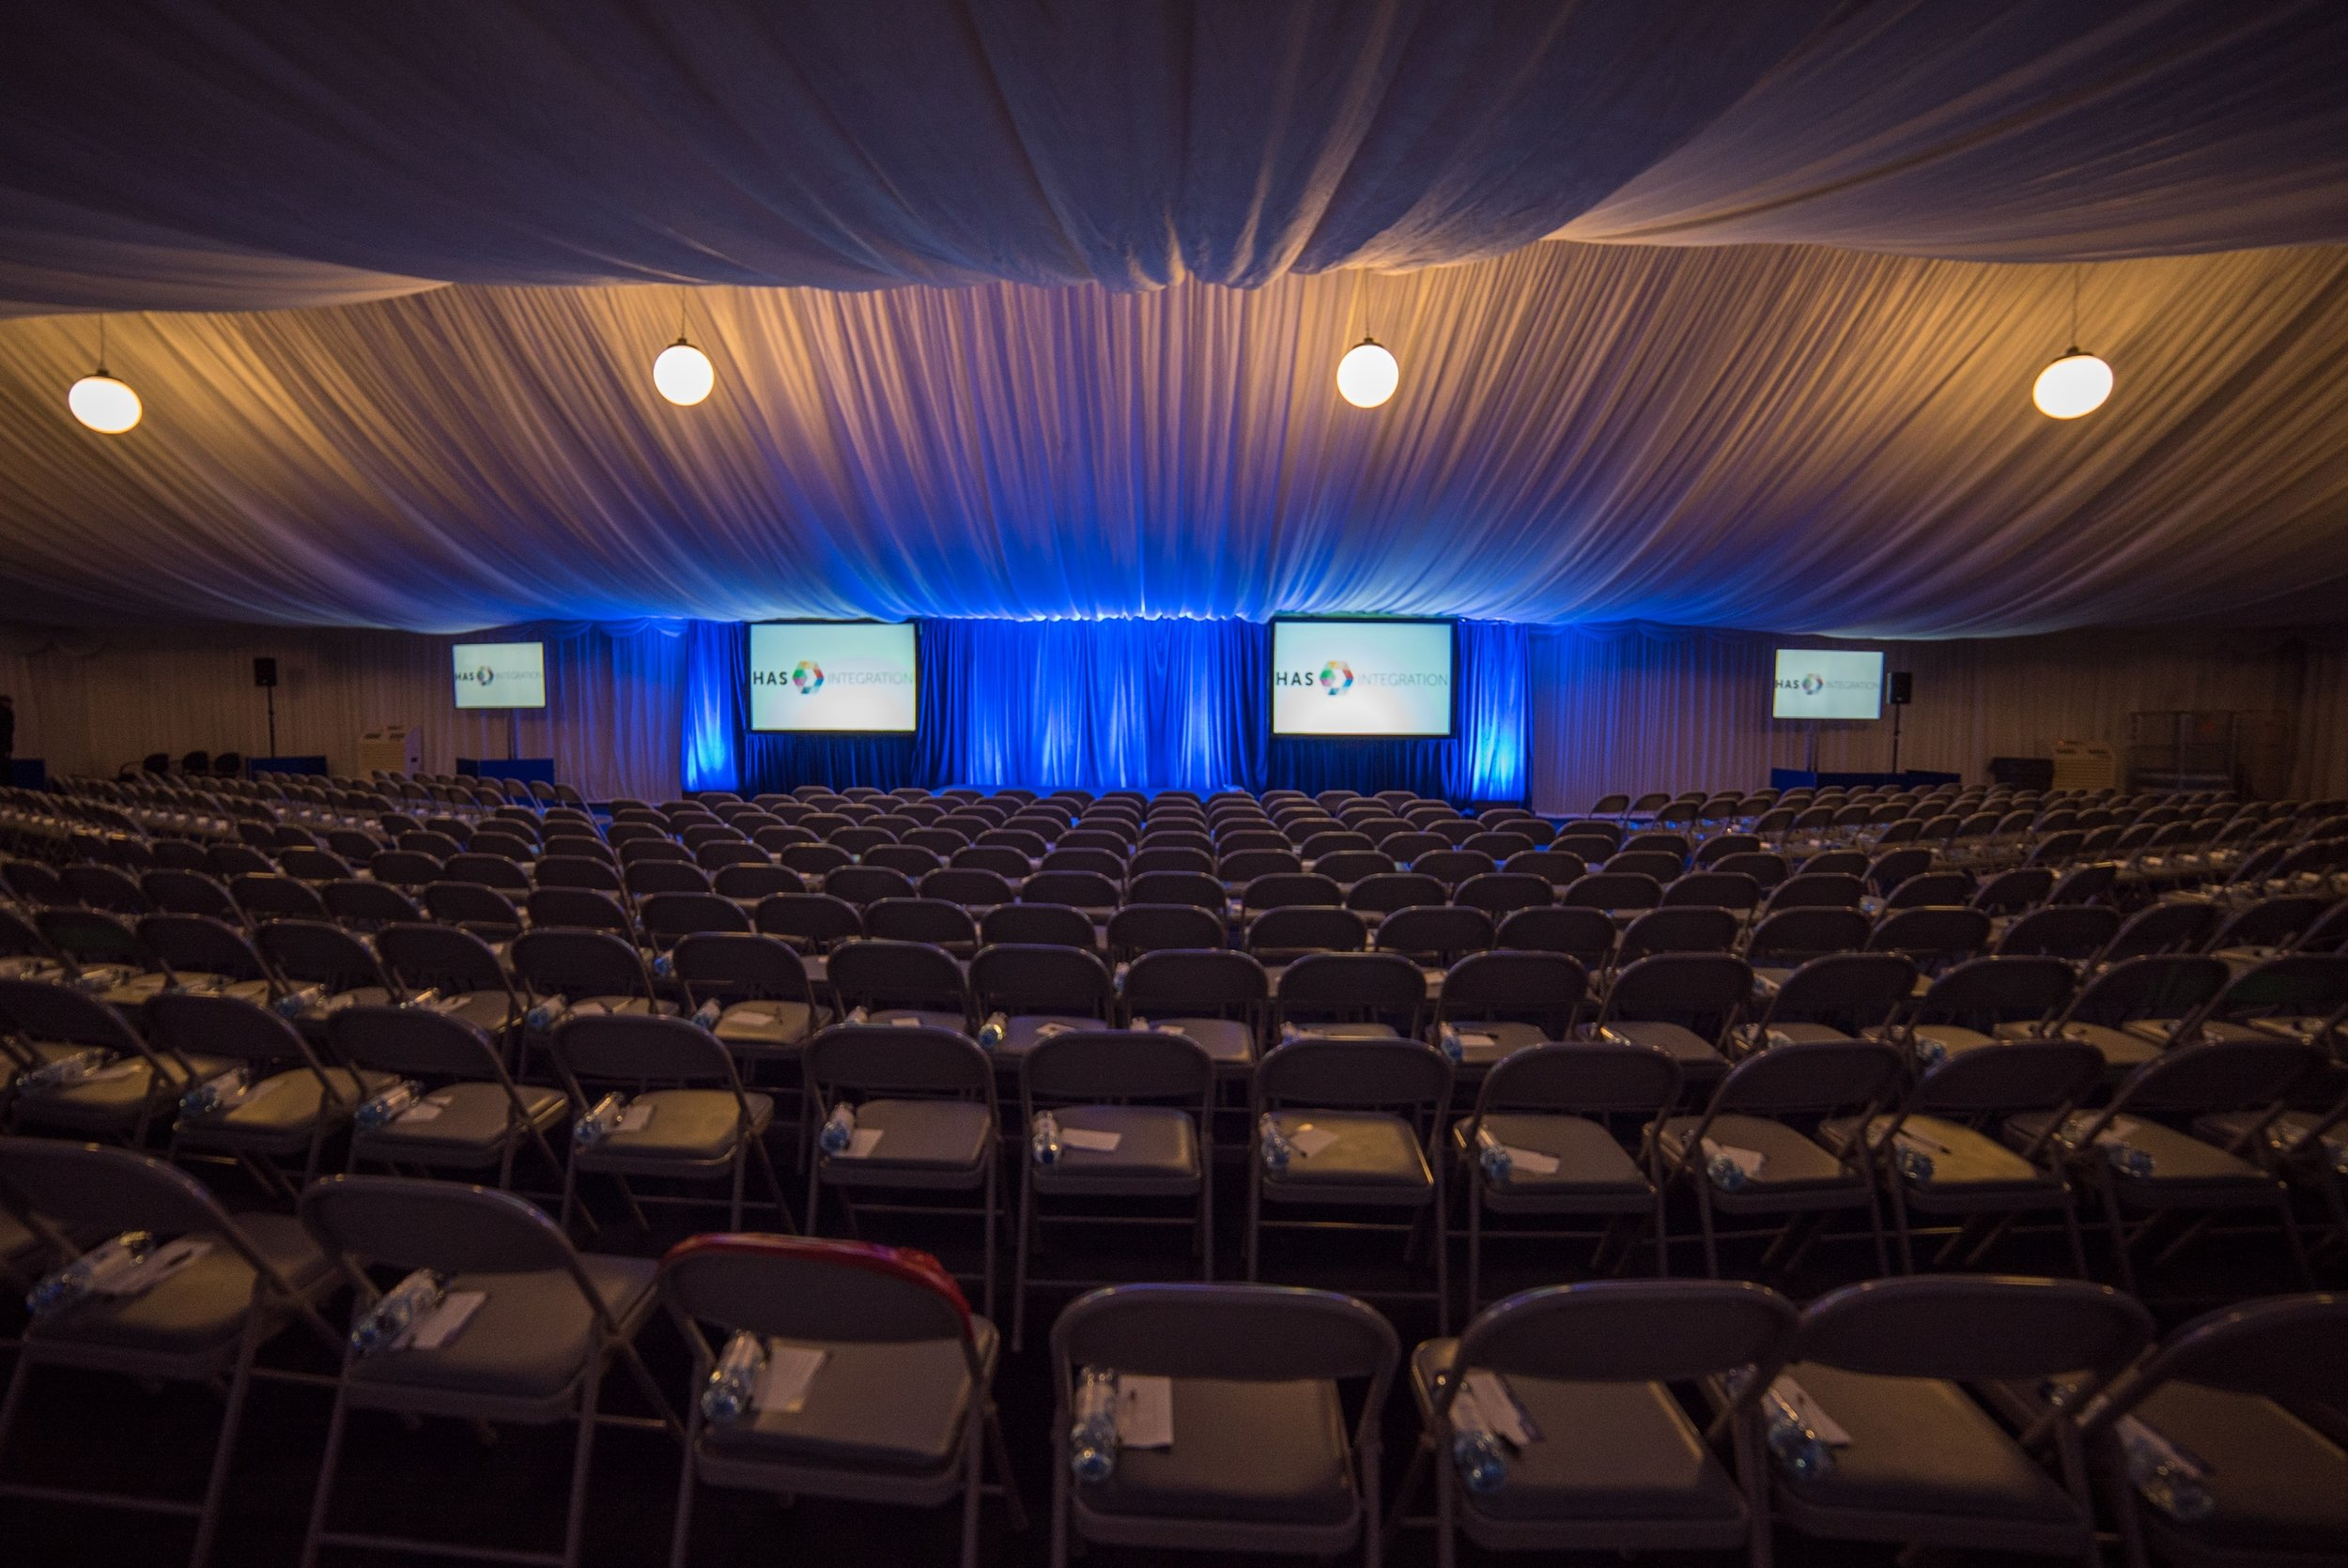 Live event rental marquee